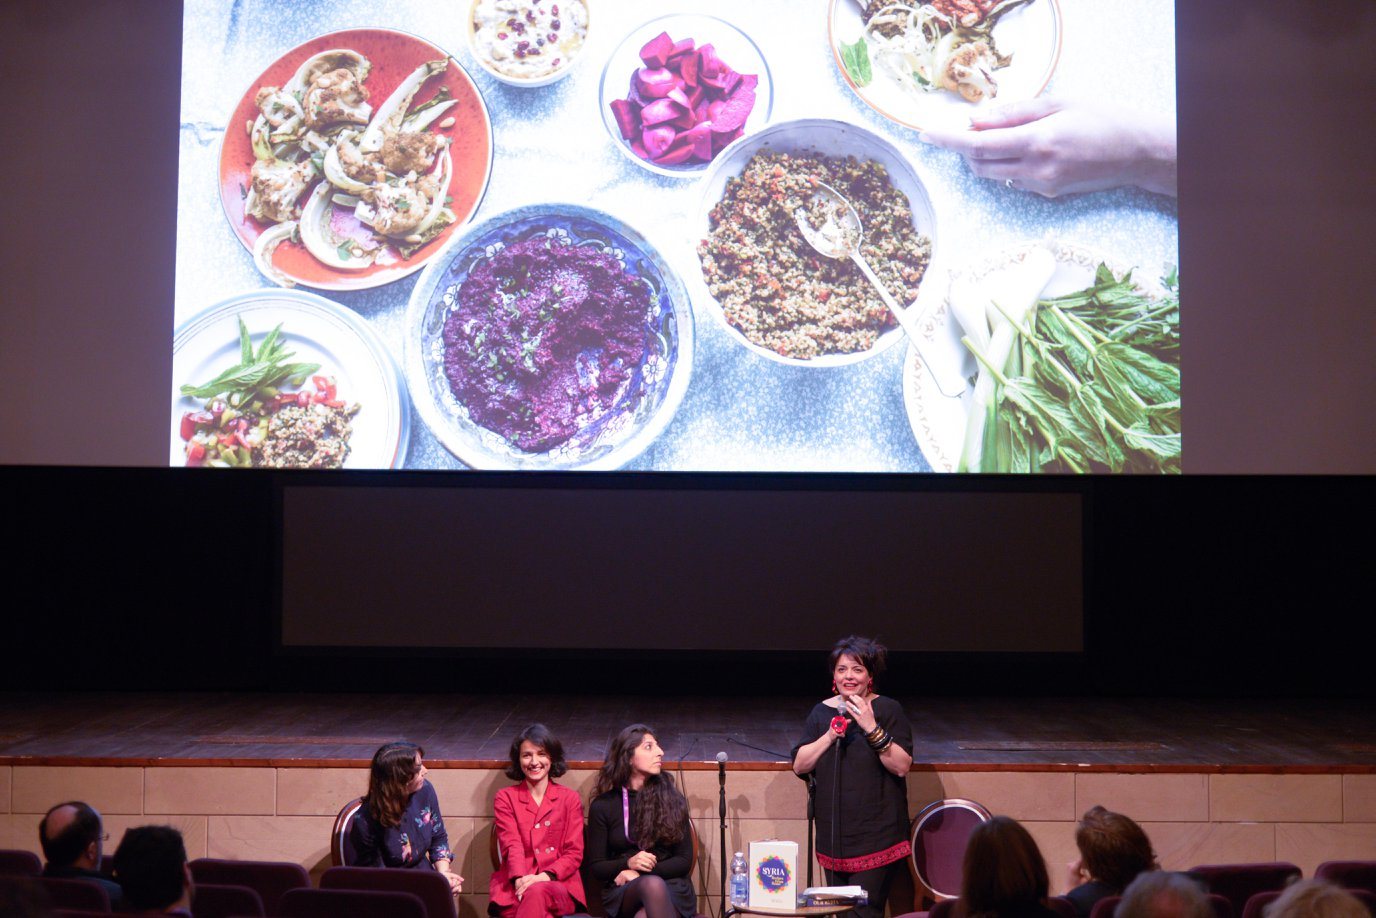 'Our Syria. Recipes from Home' authors Itab Azzam and Dina Mousawi, with Silvia Chiarantini